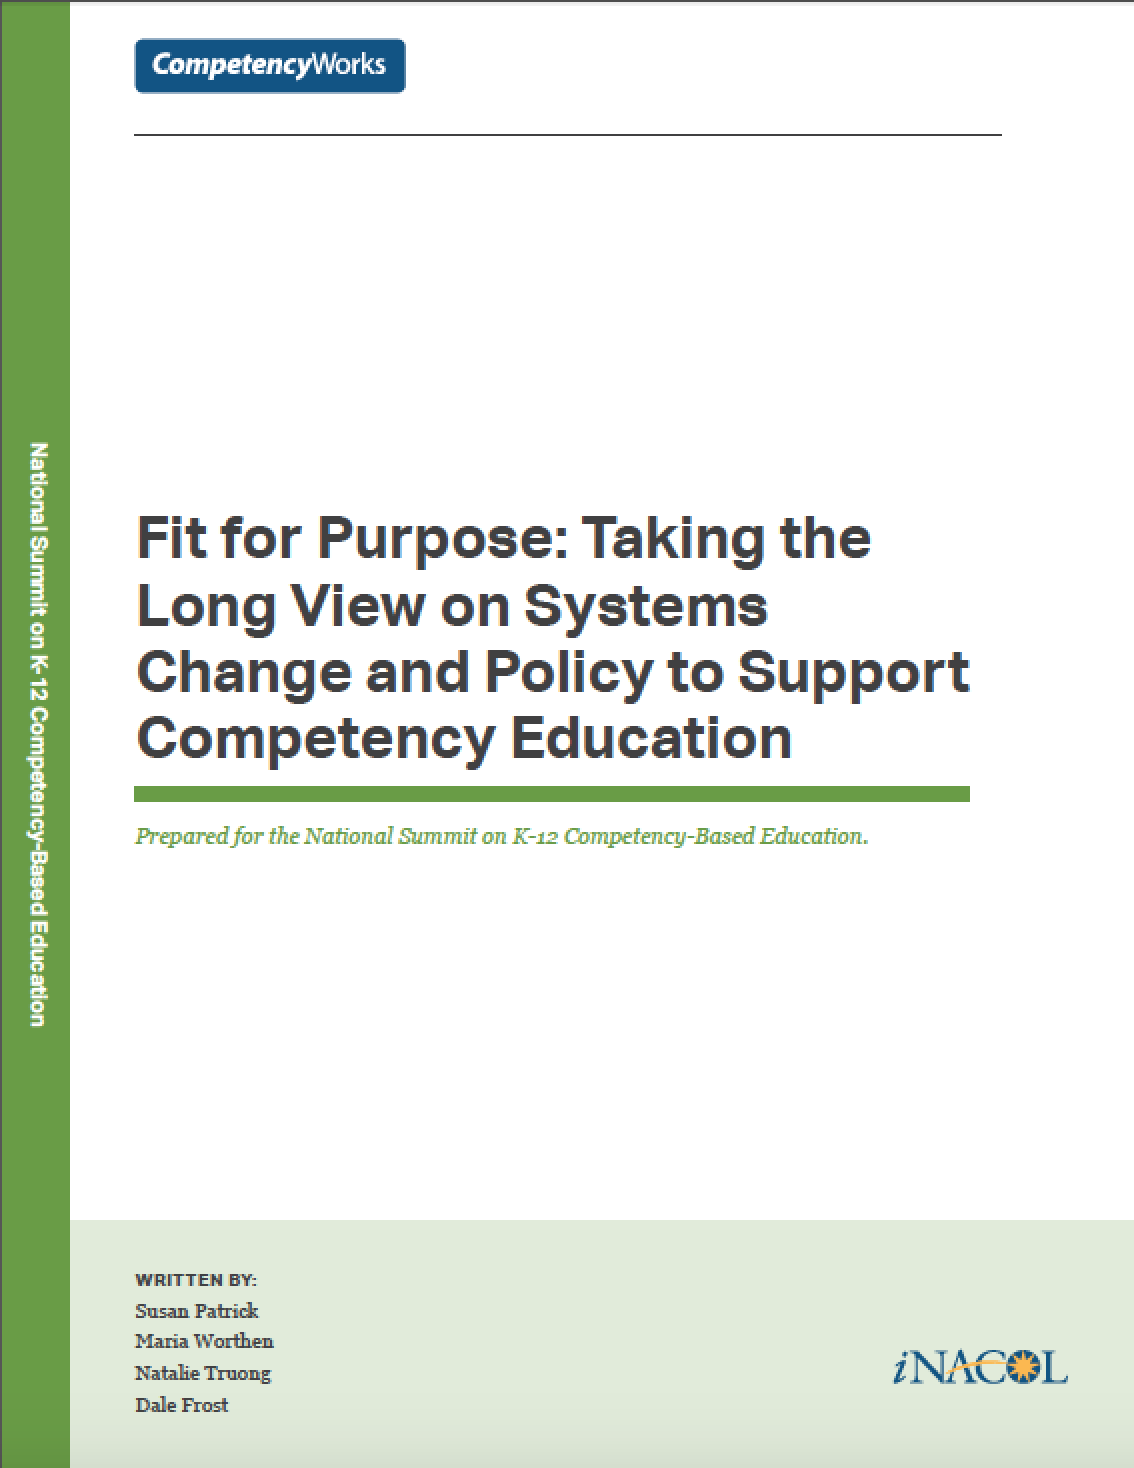 Fit for Purpose: Taking the Long View on Systems Change and Policy to Support Competency Education